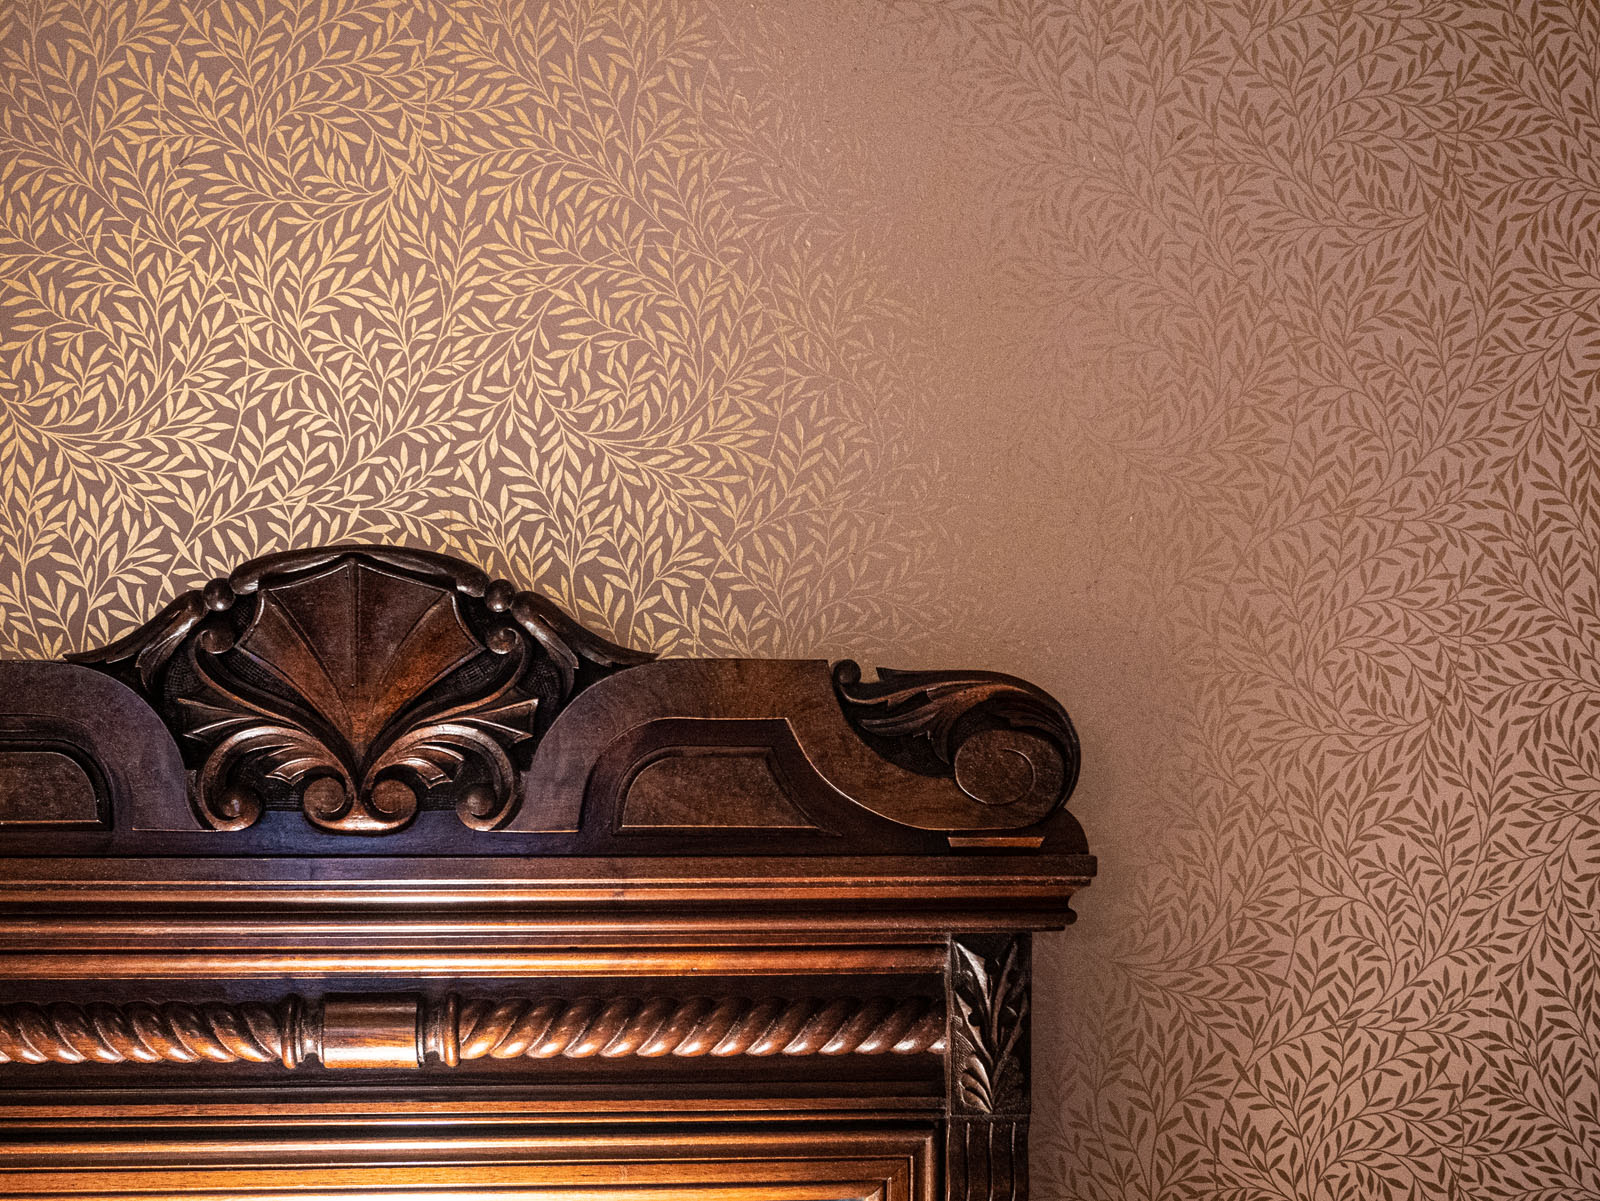 CO_Vacationmoon_StraterVictorianHotel-1000730.jpg